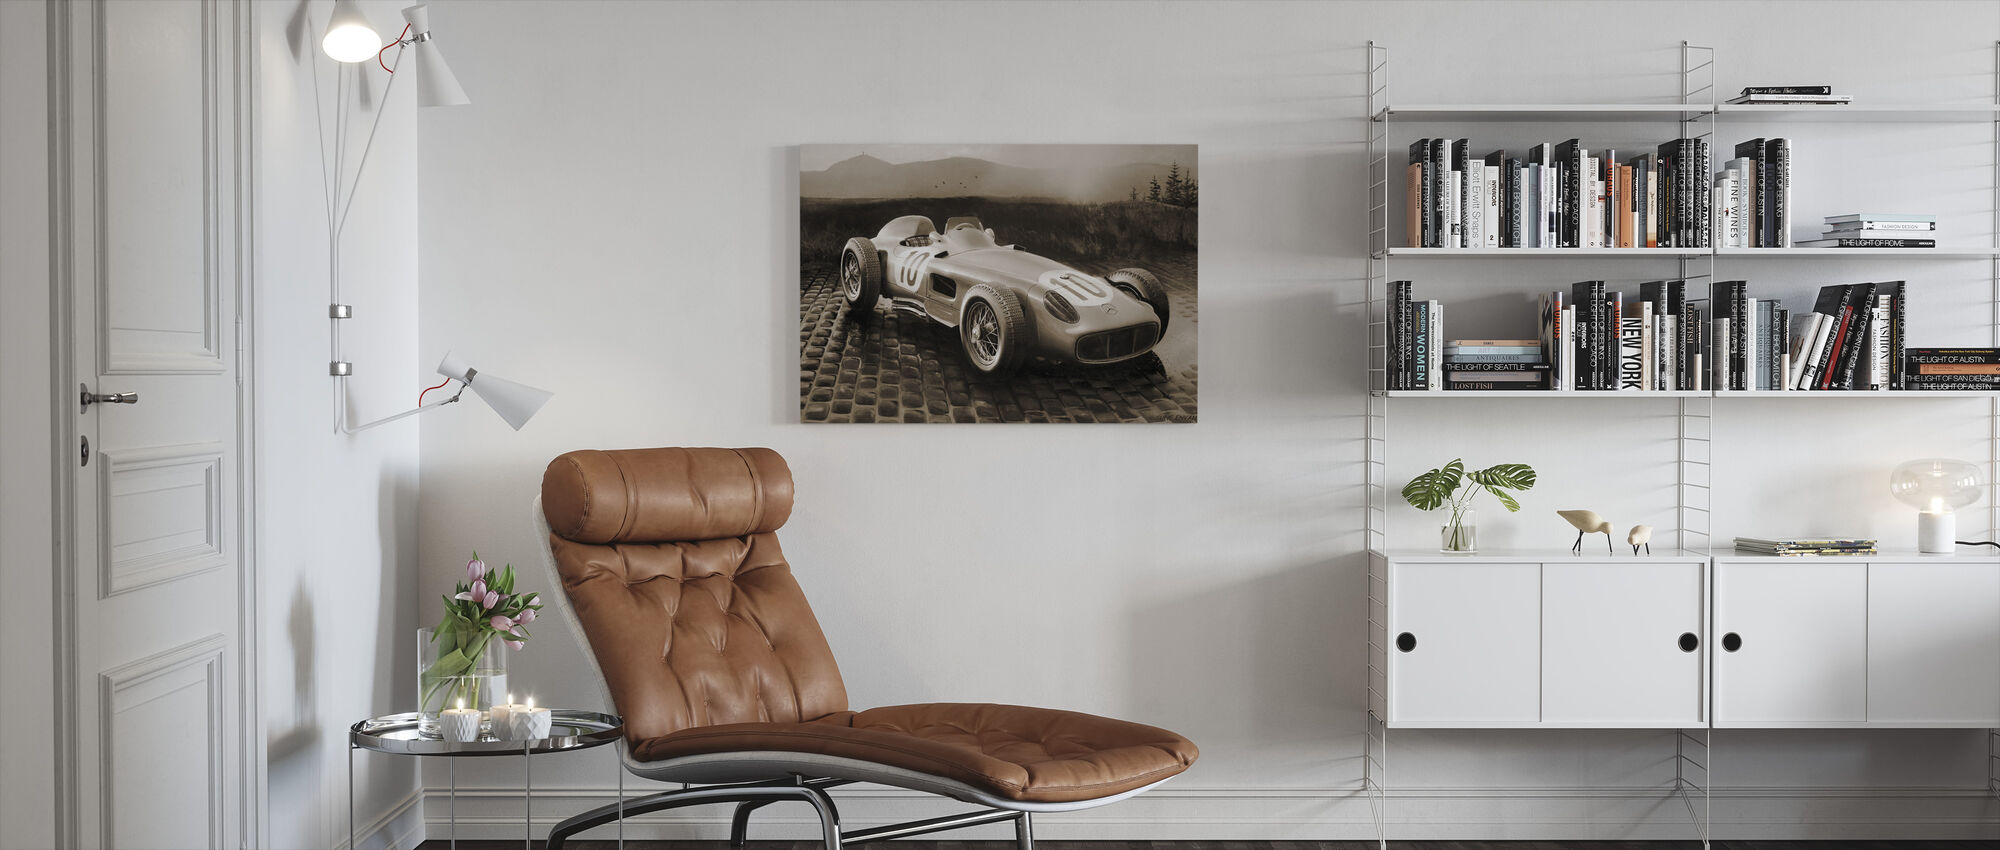 Car 1954 Sepia - Canvas print - Living Room